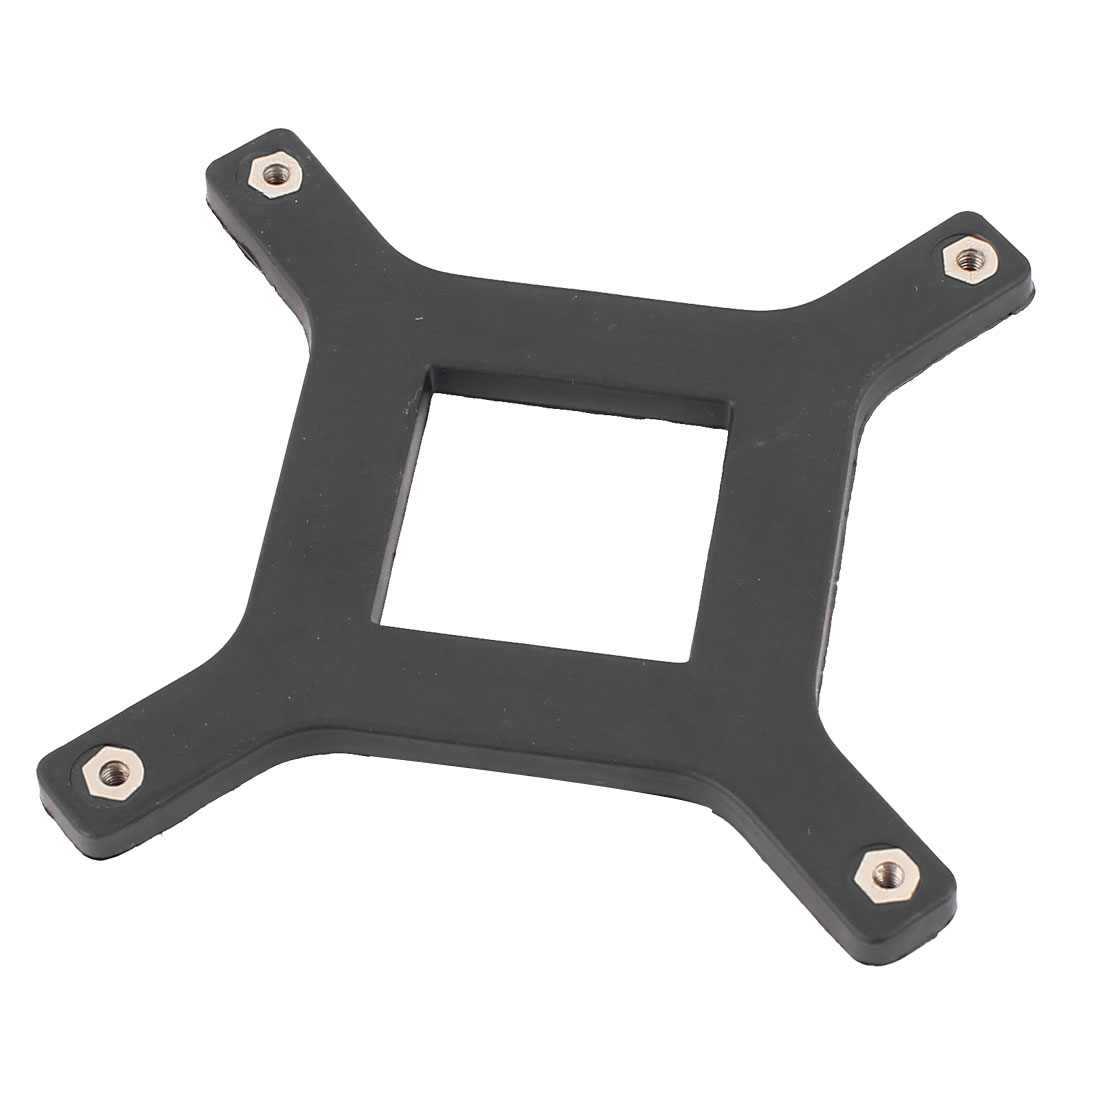 Intel CPU Socket LGA775 Fan Heatsink Motherboard Bracket Clamp Black